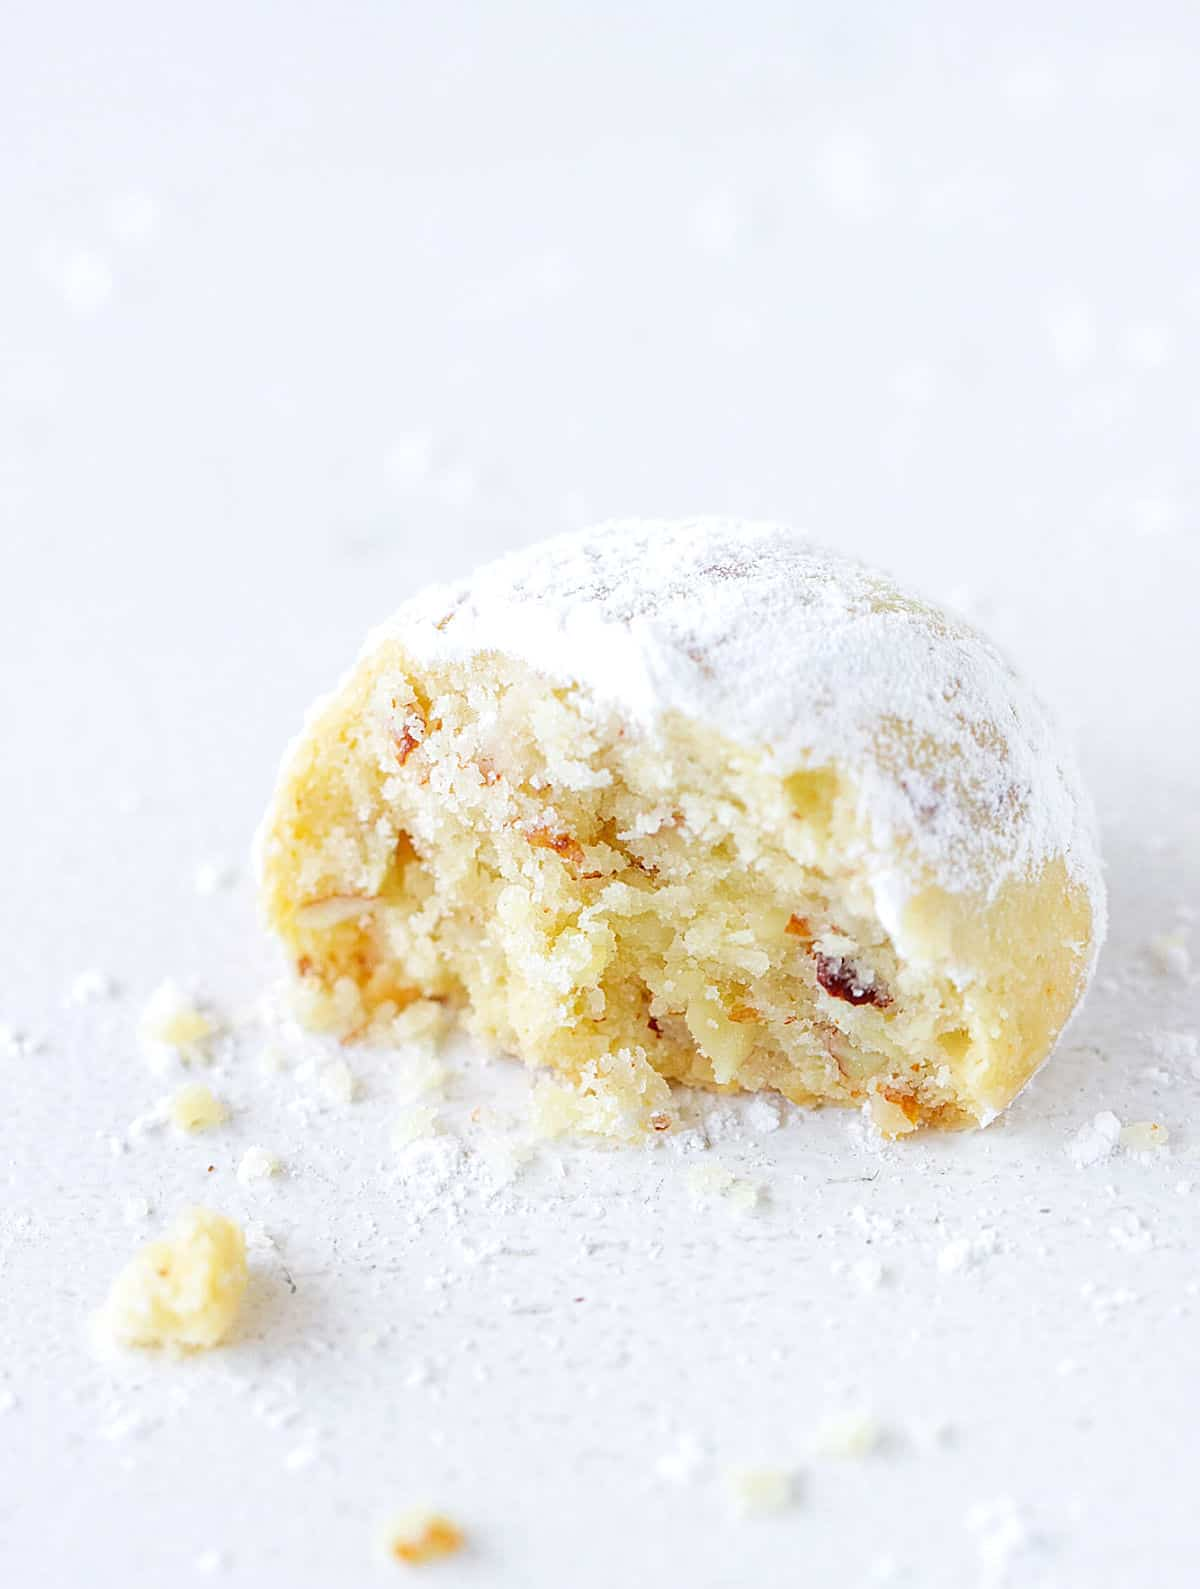 Crumbly round butter cookie, bitten, white surface with crumbs and powdered sugar